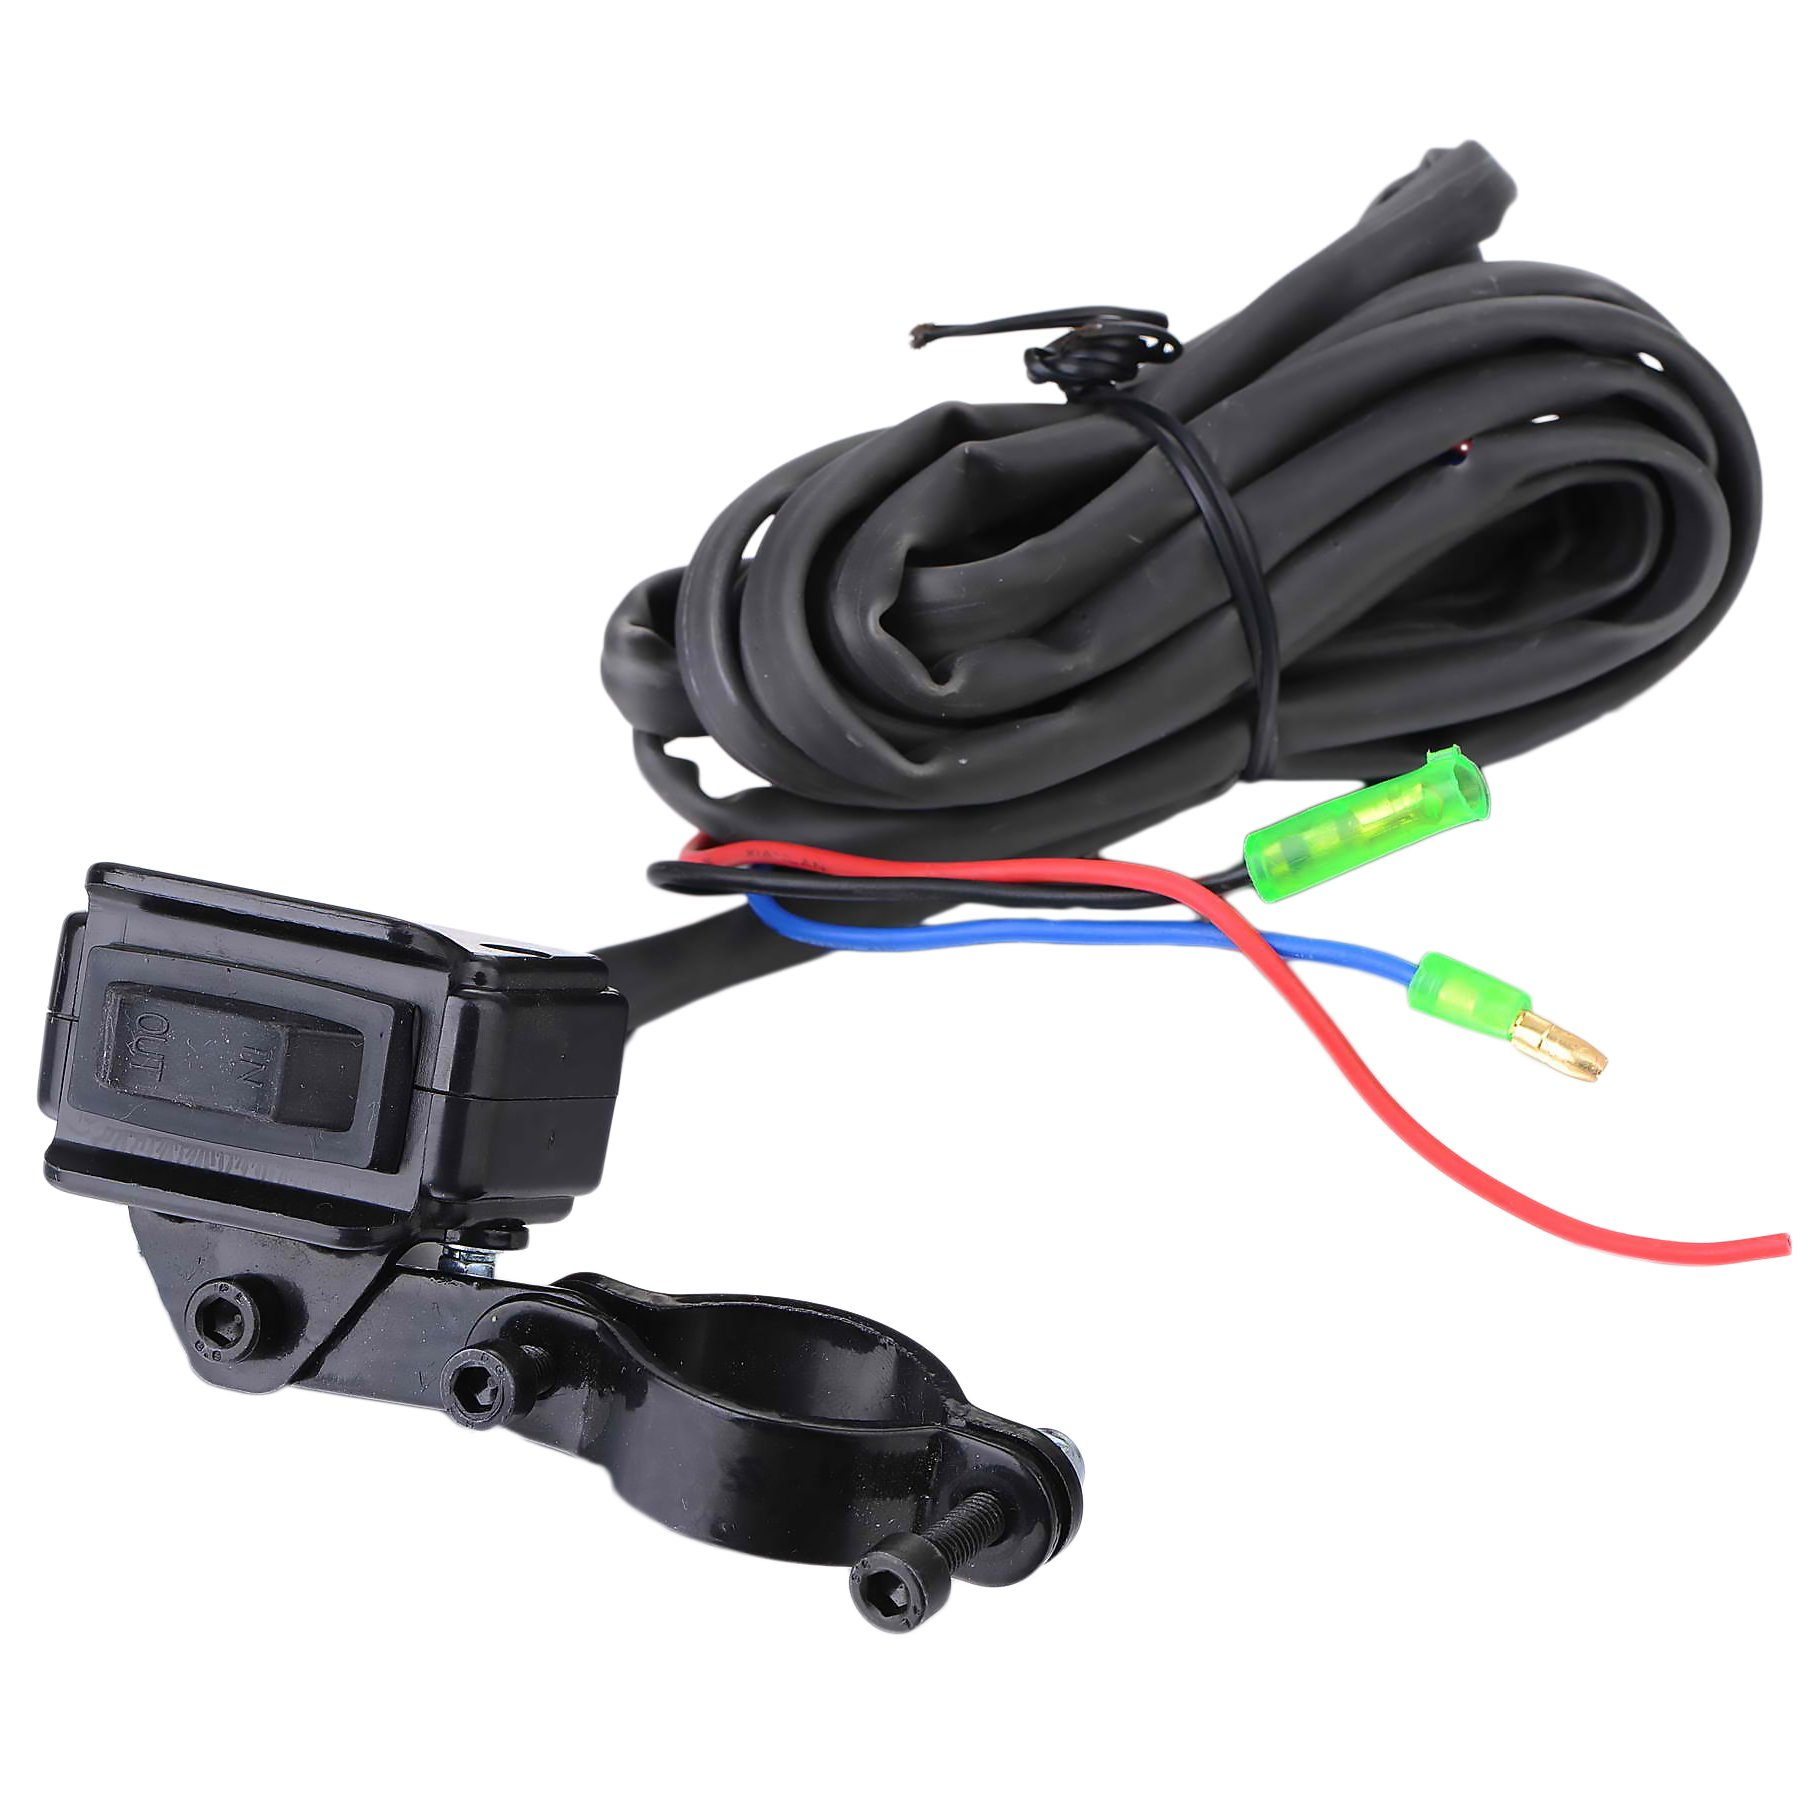 BIZ Tow Recovery Winch 4500lbs Capacity Electric Winch Synthetic Rope Winch for ATV/UTV/Small SUV or Buggy,4500D-1S by BIZ (Image #4)